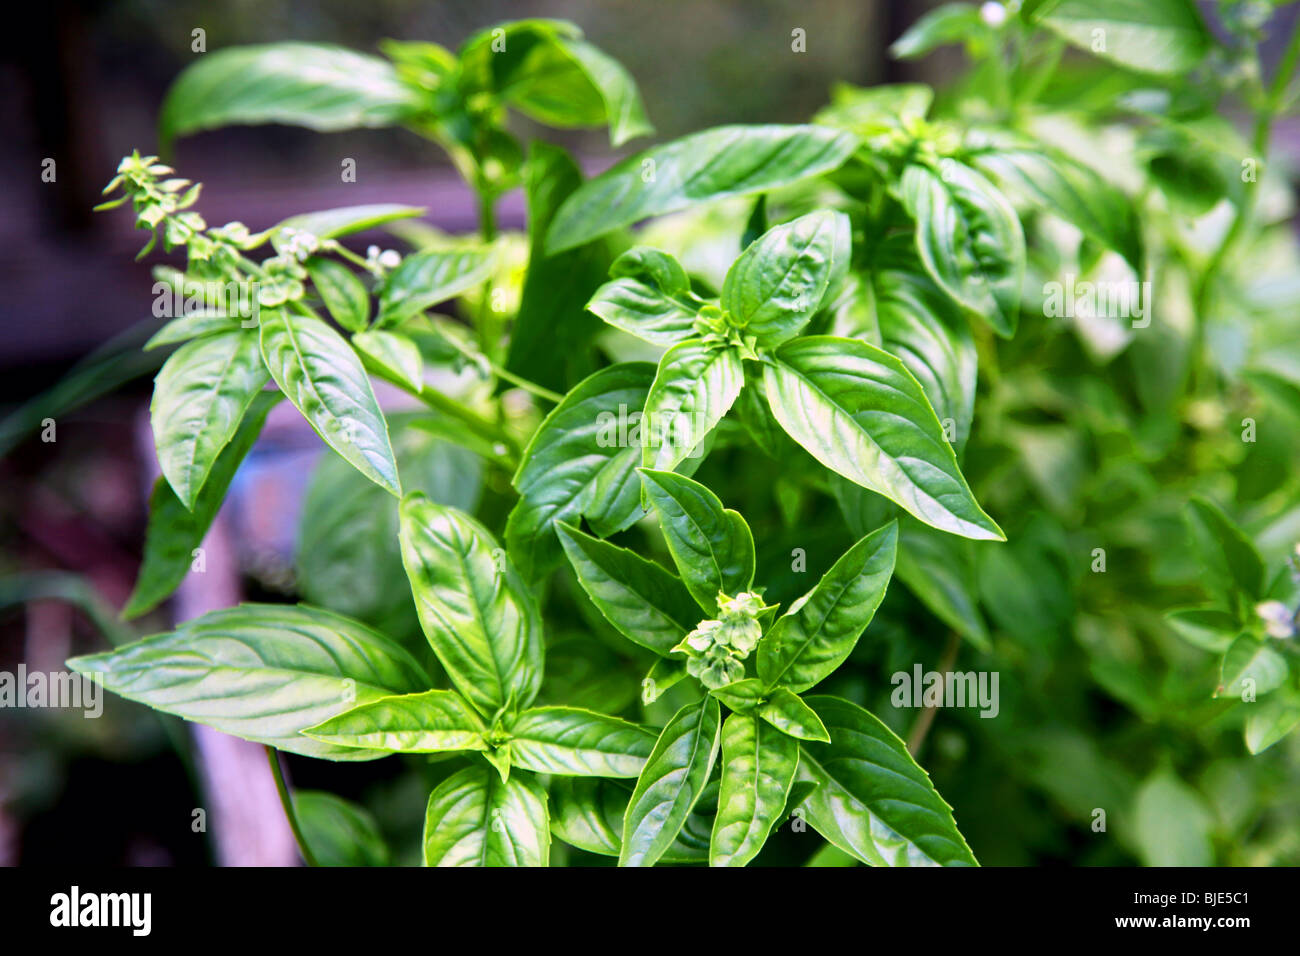 Fresh basil grown organically in a home garden, early season, in flowering, bloom, purple flower stems, small, young - Stock Image